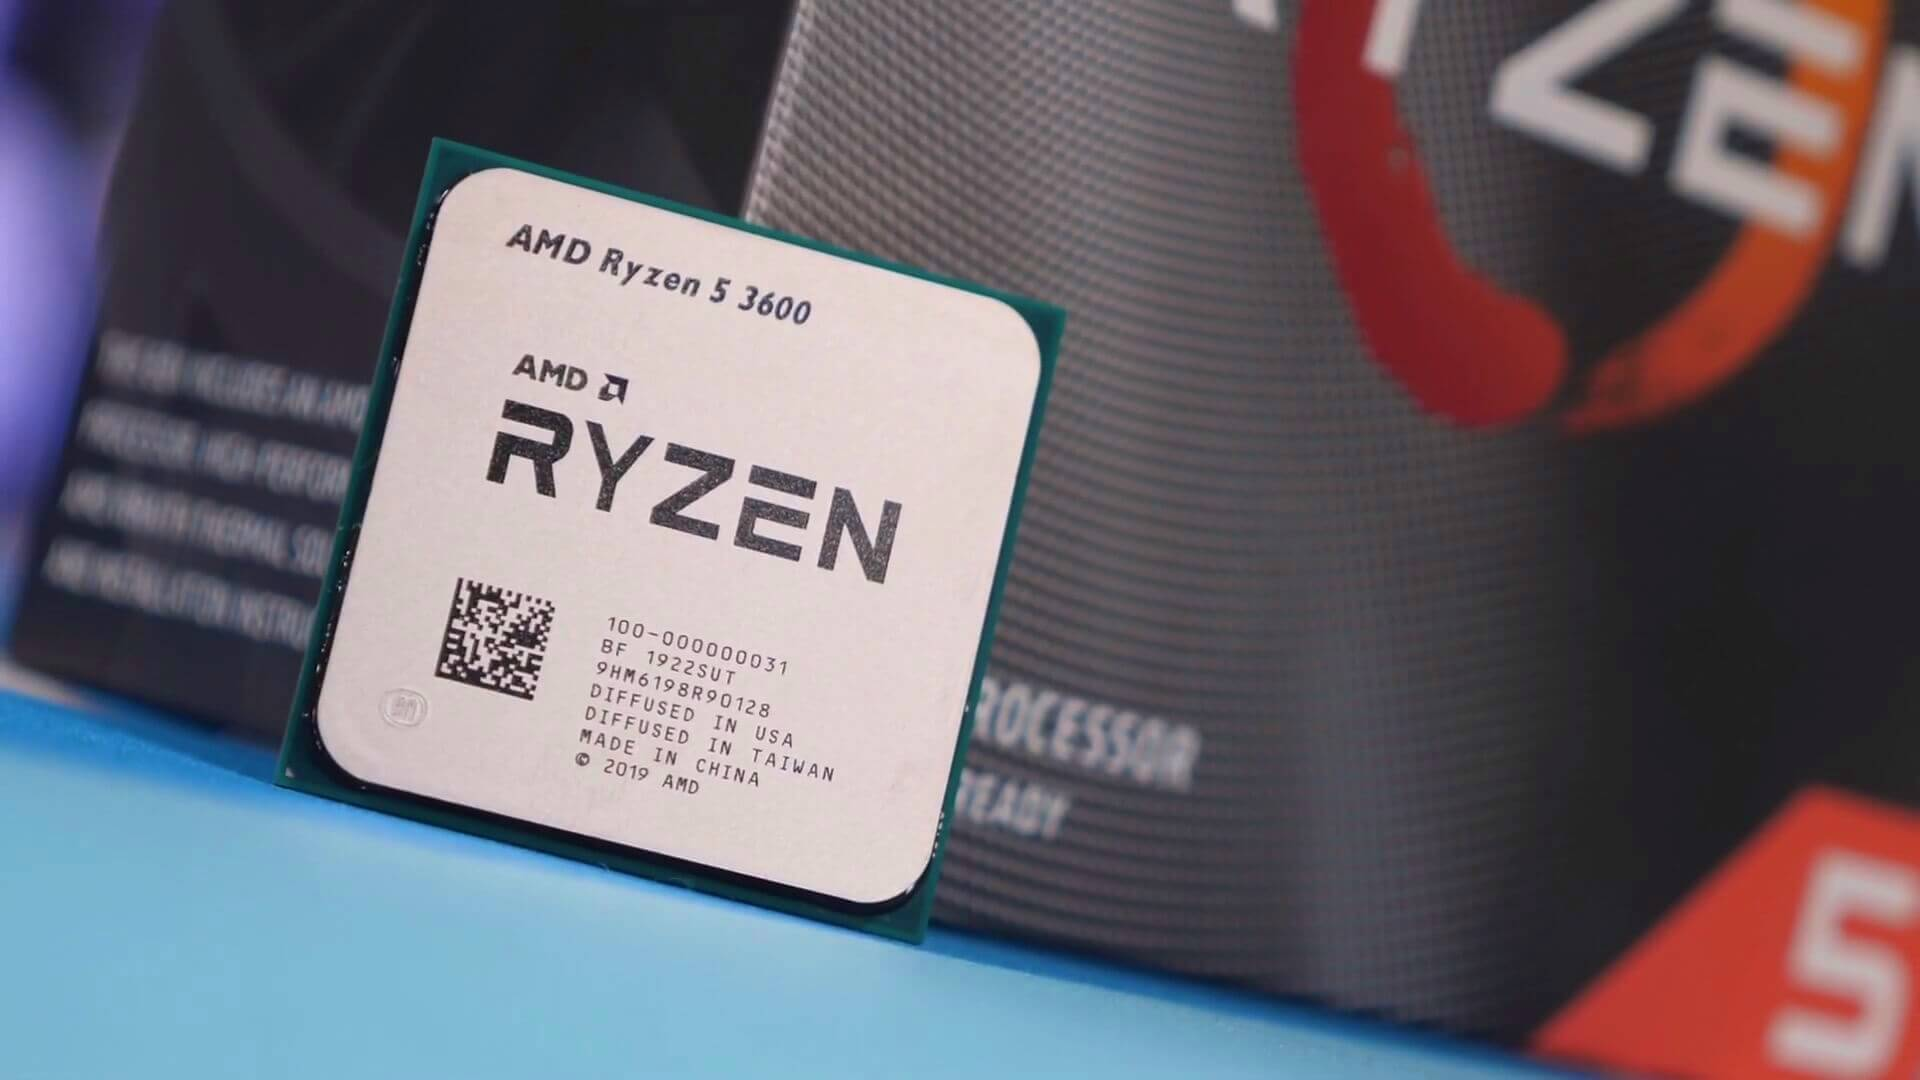 AMD's chiplet design affords massive cost-cutting opportunities